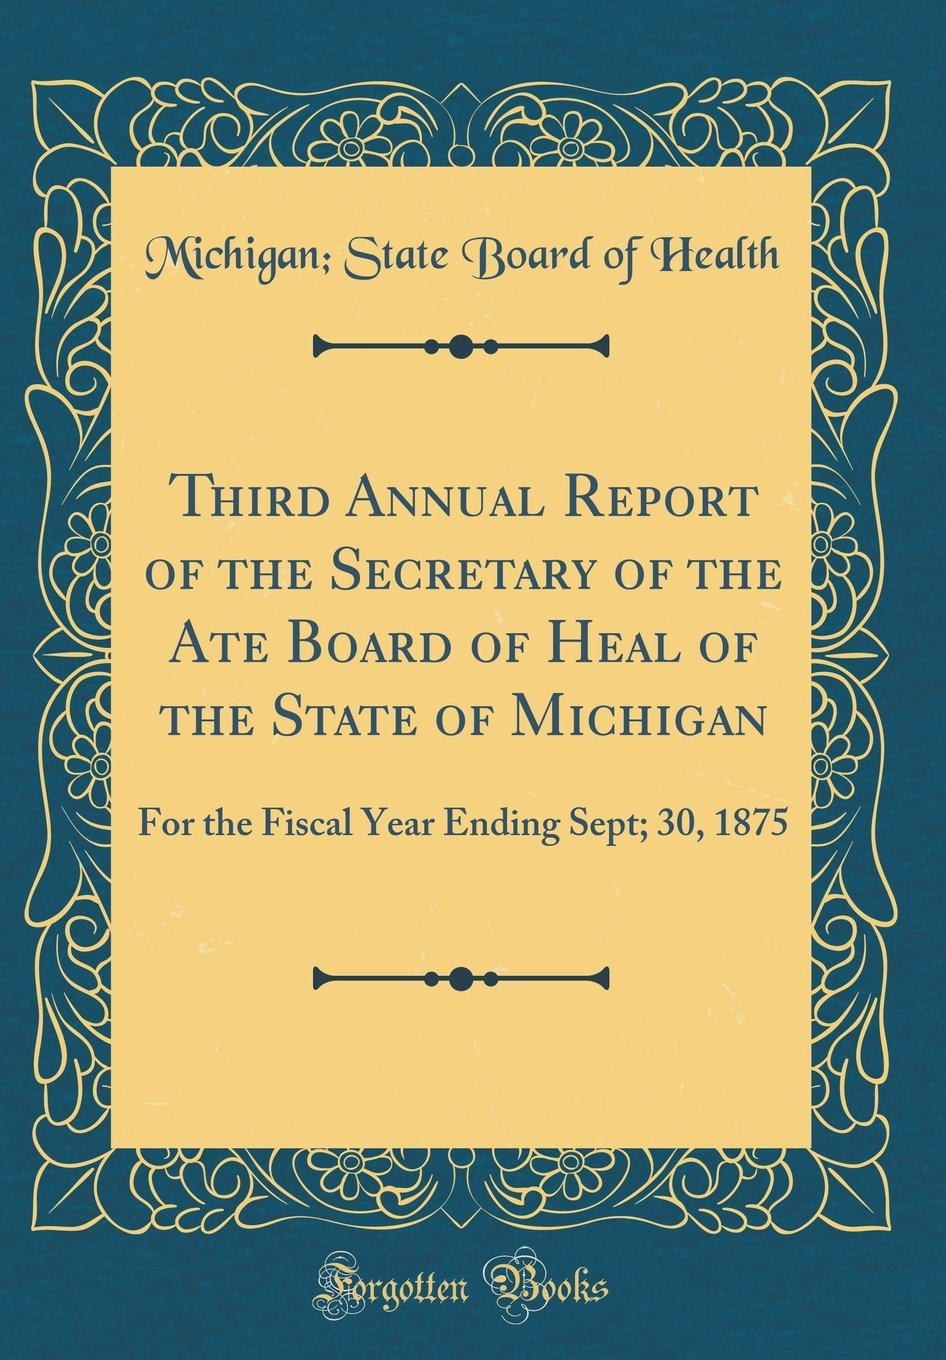 Third Annual Report of the Secretary of the Ate Board of Heal of the State of Michigan: For the Fiscal Year Ending Sept; 30, 1875 (Classic Reprint) pdf